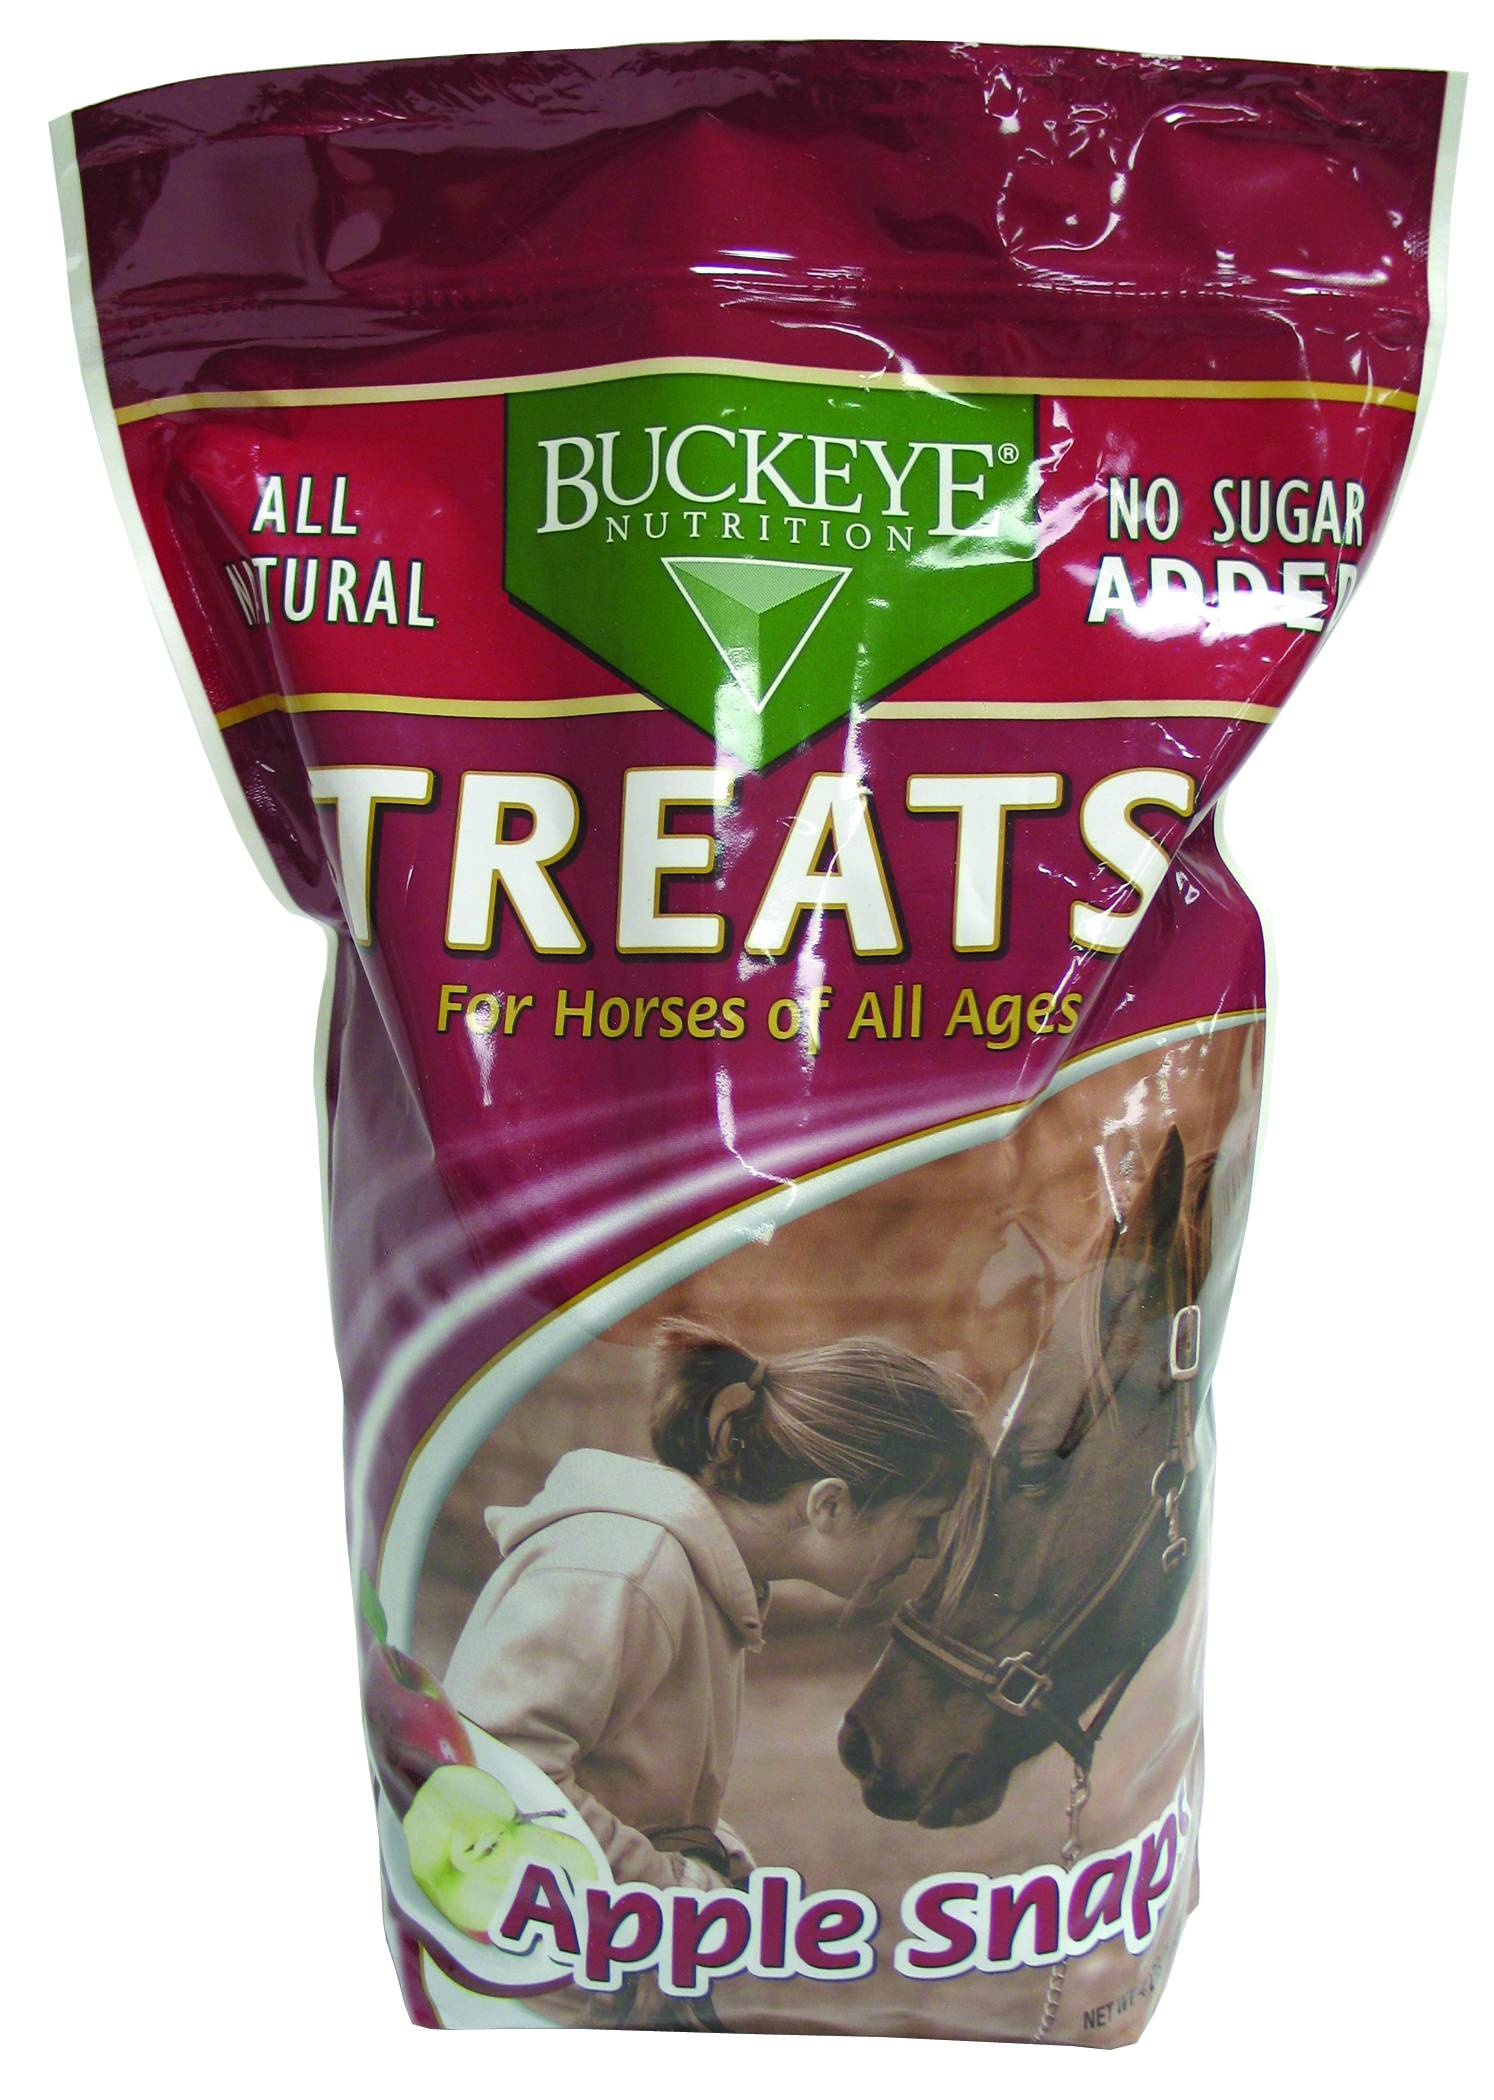 Buckeye Nutrition Sugar Free Apple Snaps